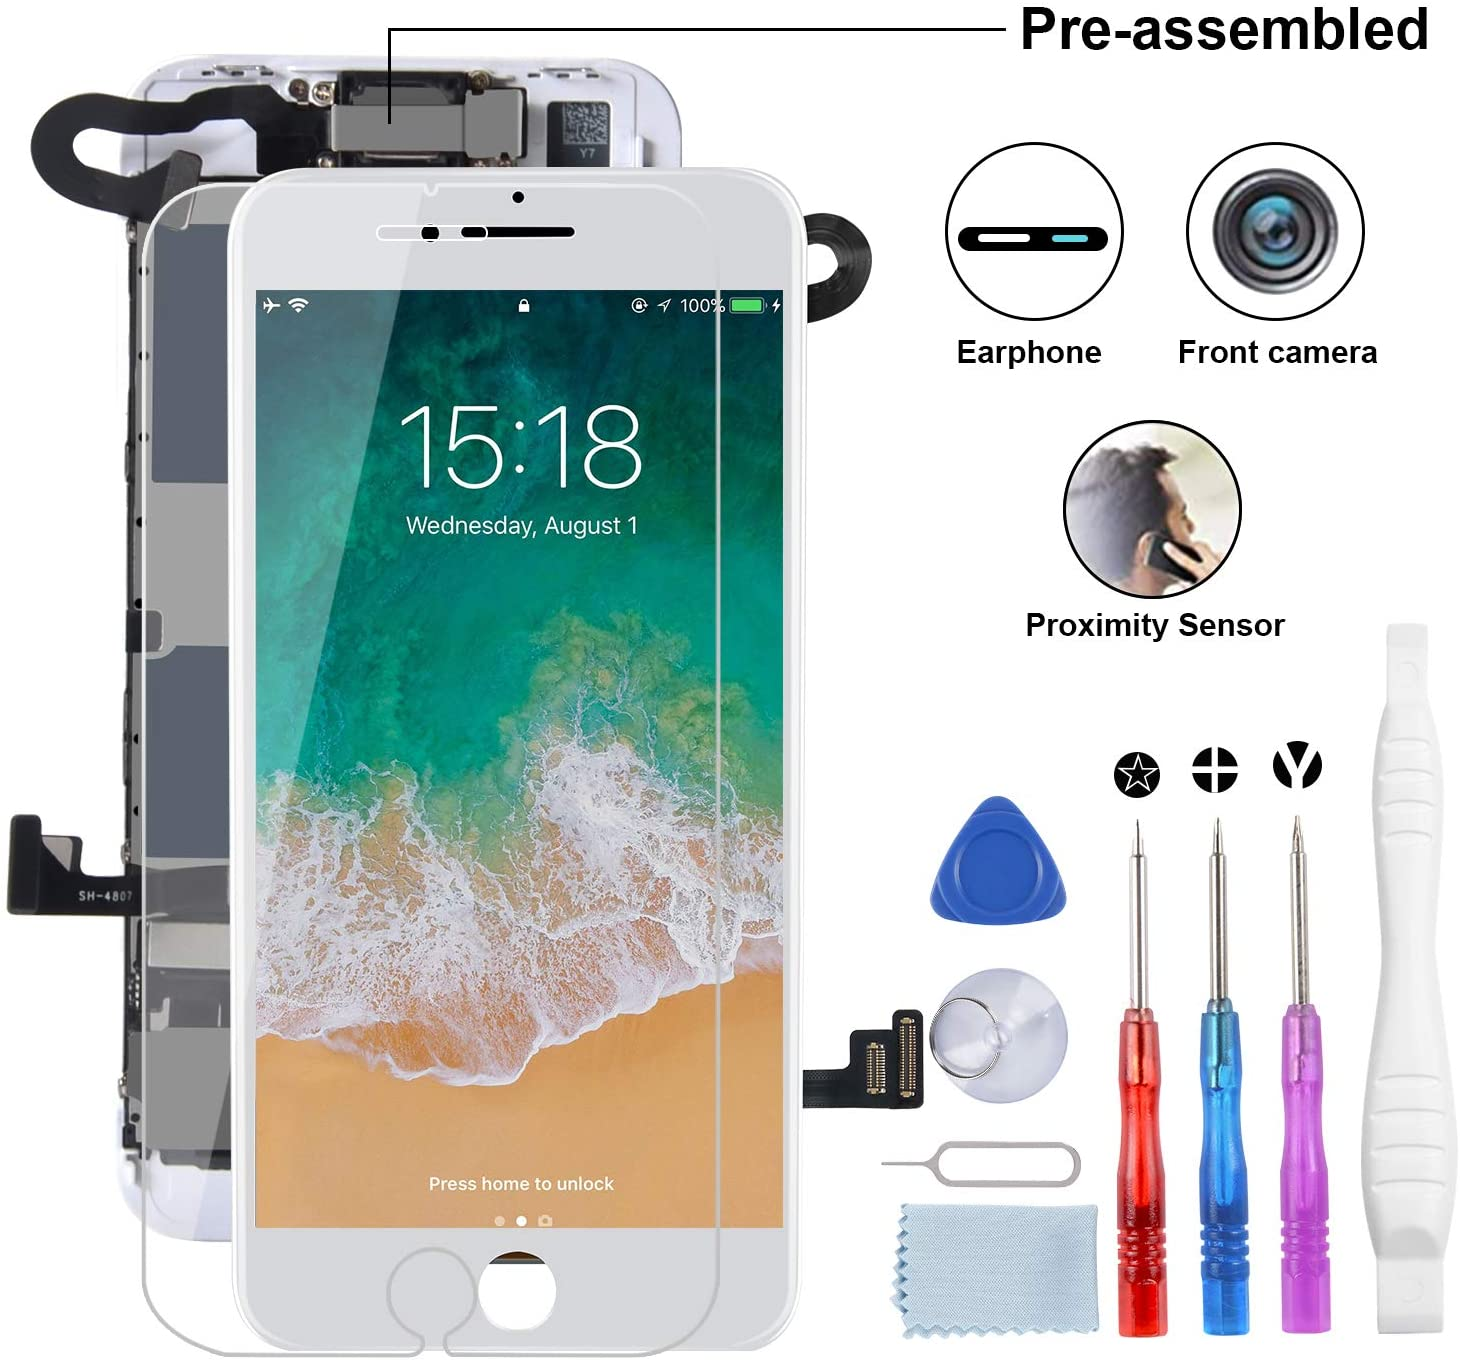 YPLANG for iPhone 8 Screen Replacement, LCD Display 3D Touch Screen Digitizer Full Assembly with Proximity Sensor, Ear Speaker and Front Camera (White)